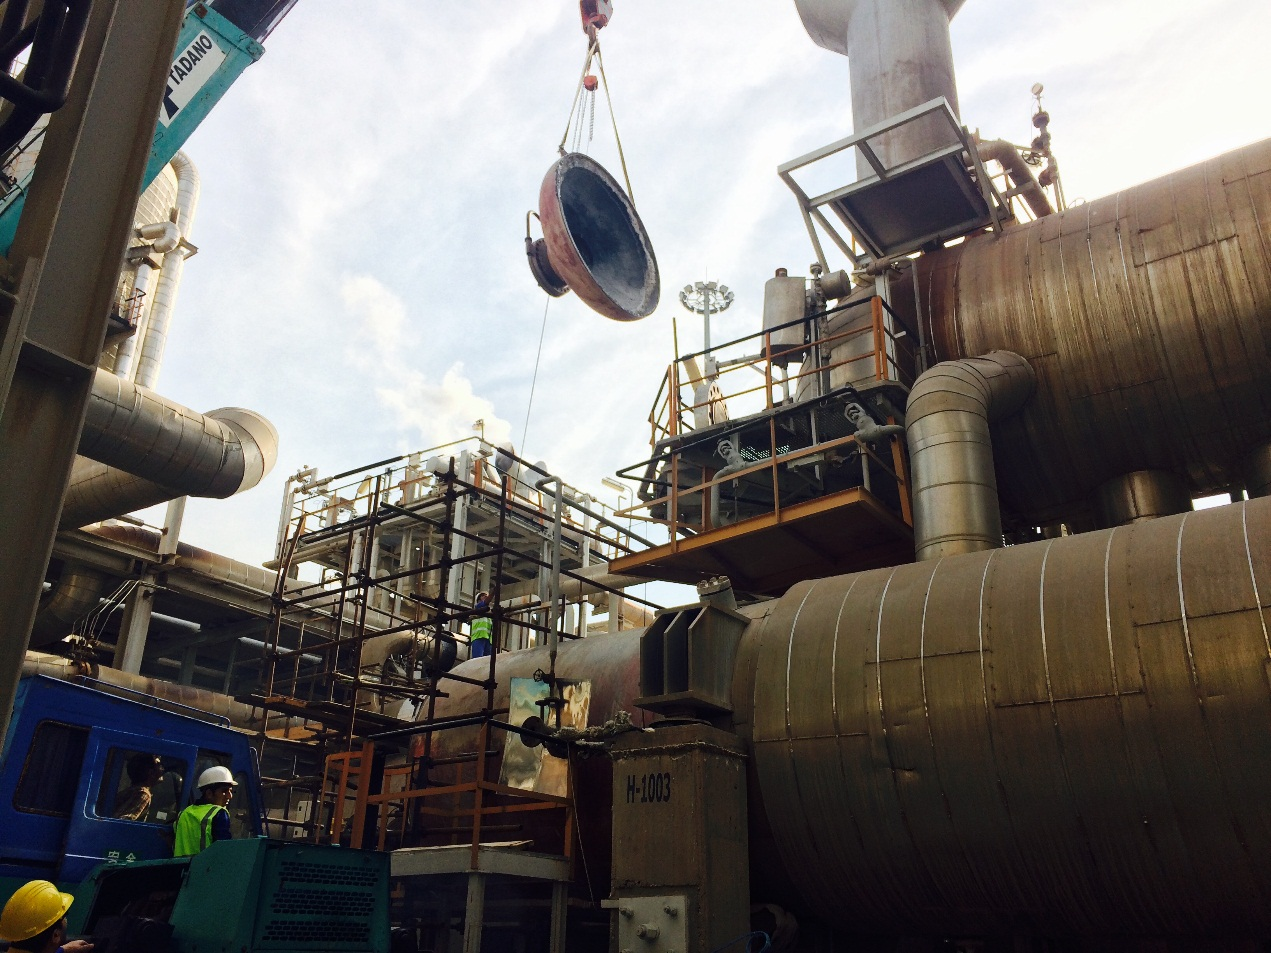 Zagros Petrochemical Complex Overhaul Project